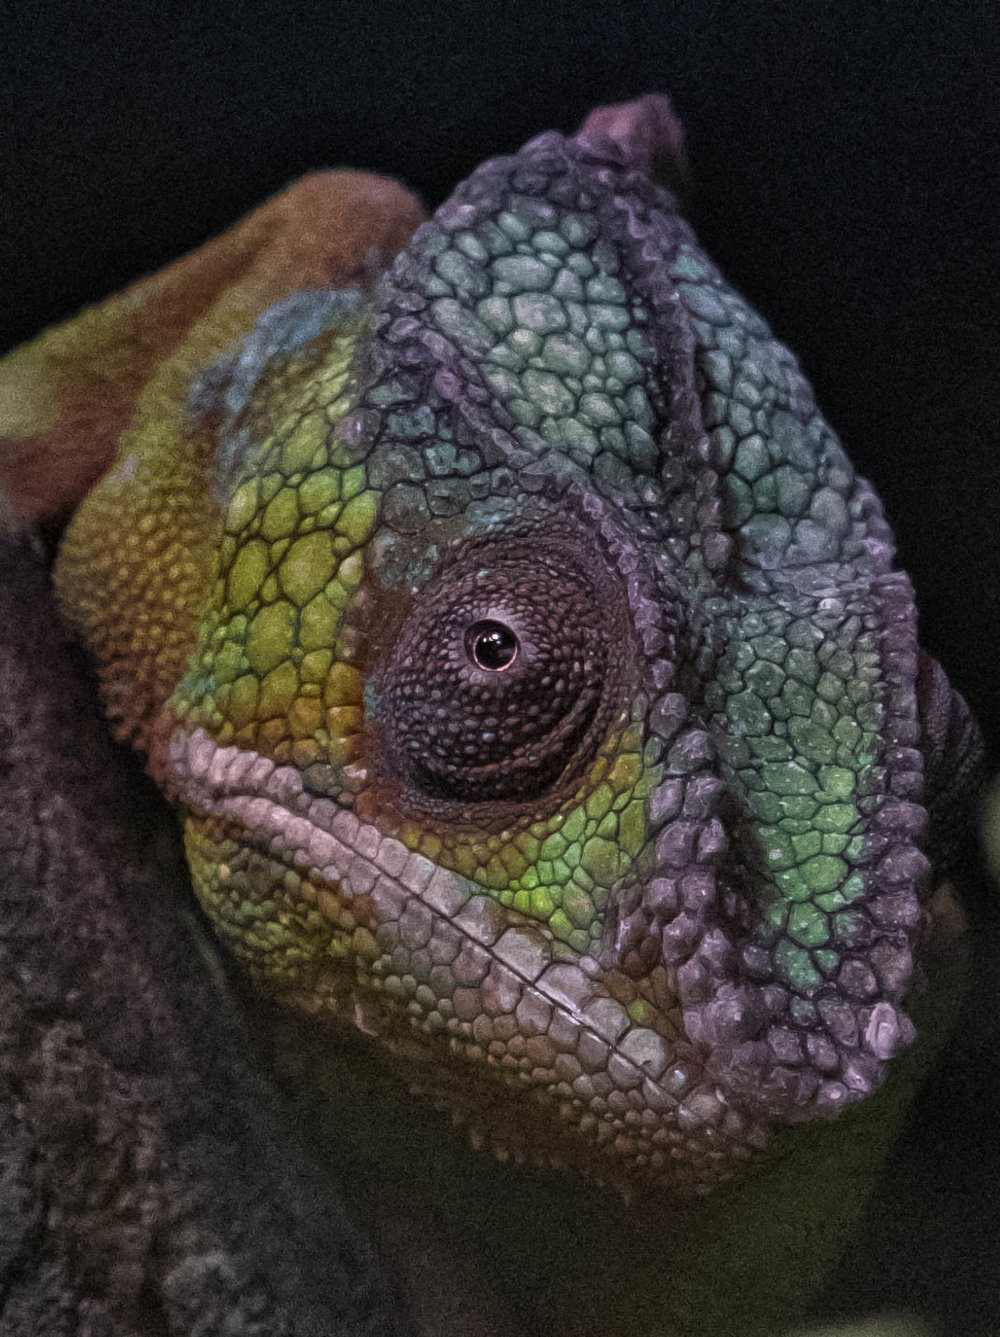 1 January 2018 Dublin Zoo Panther Chameleon-.jpg